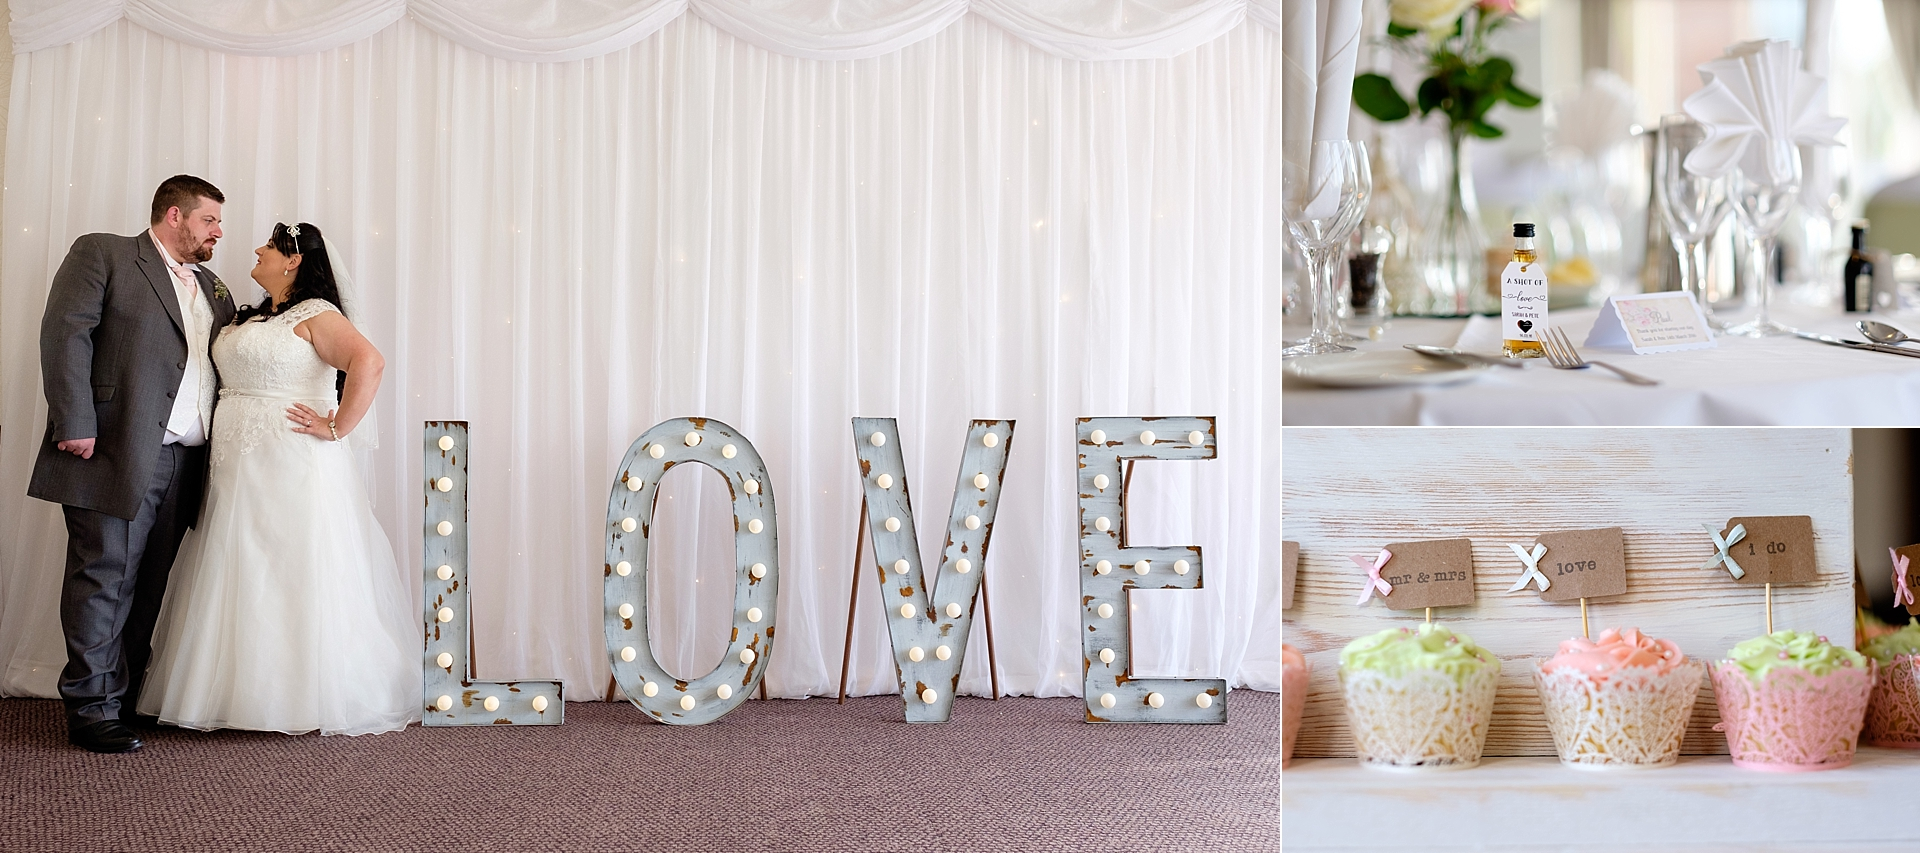 wedding photographer moat house acton trussell stafford 7.jpg